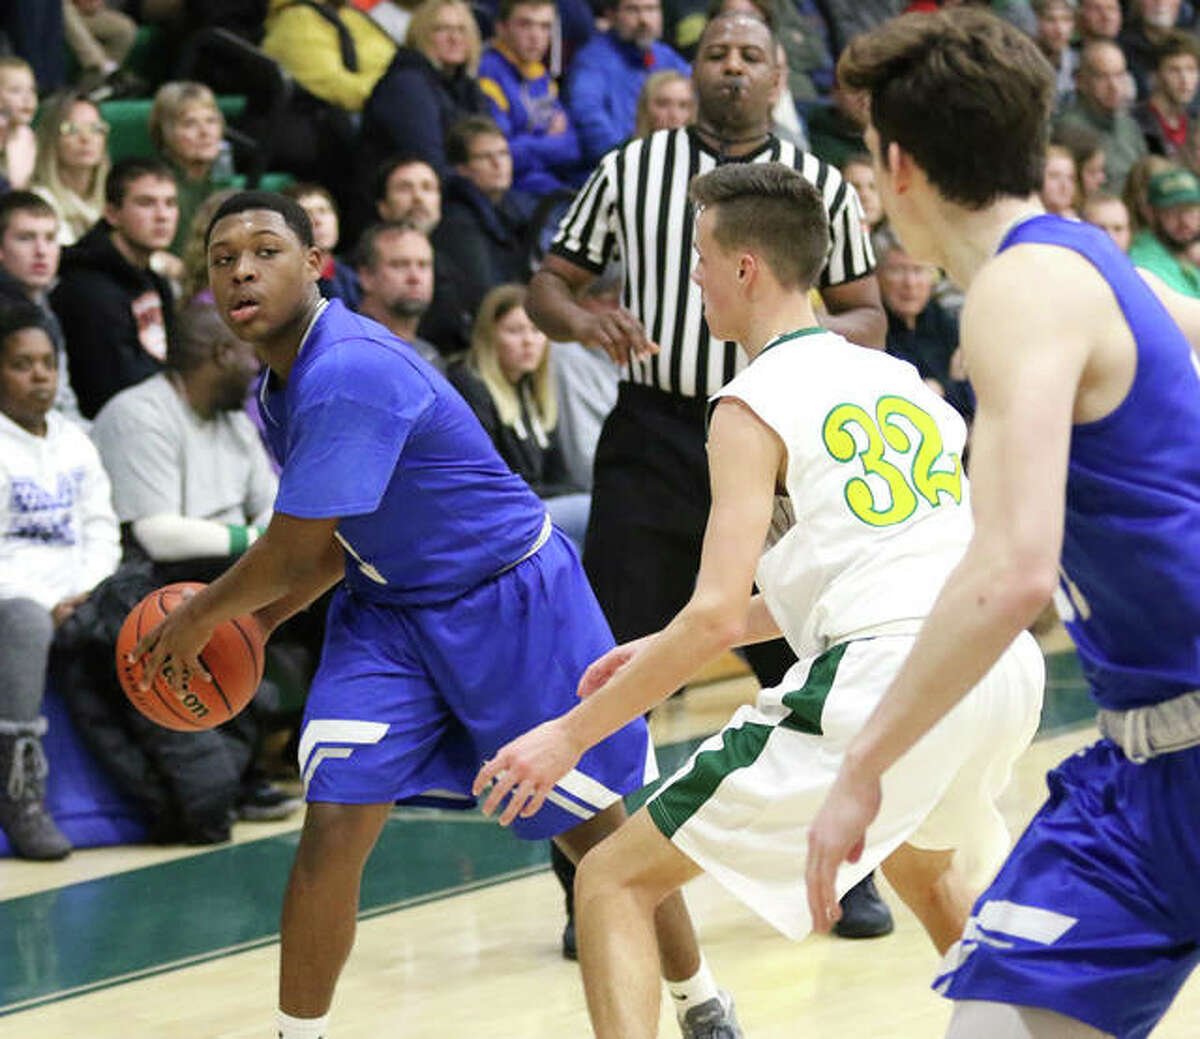 Marquette Catholic's Iggy McGee (left) looks to pass to teammate Spencer Cox while Metro-East Lutheran's Elliott Wilson defends during a Nov. 19 game at the MEL Tourney in Edwardsville.